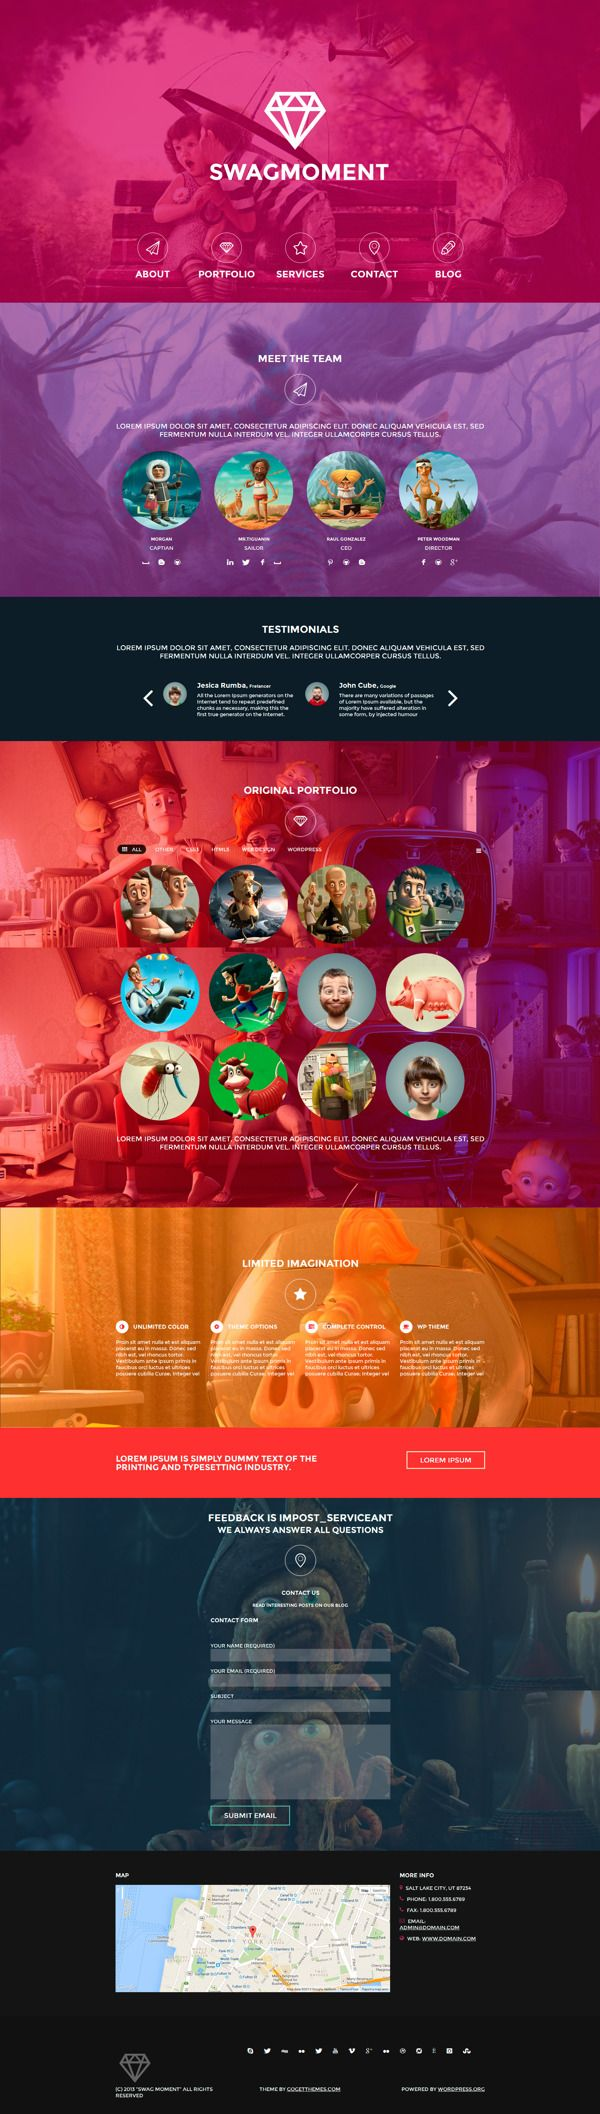 SwagMoment WordPress Theme by WordPress Awards, via Behance